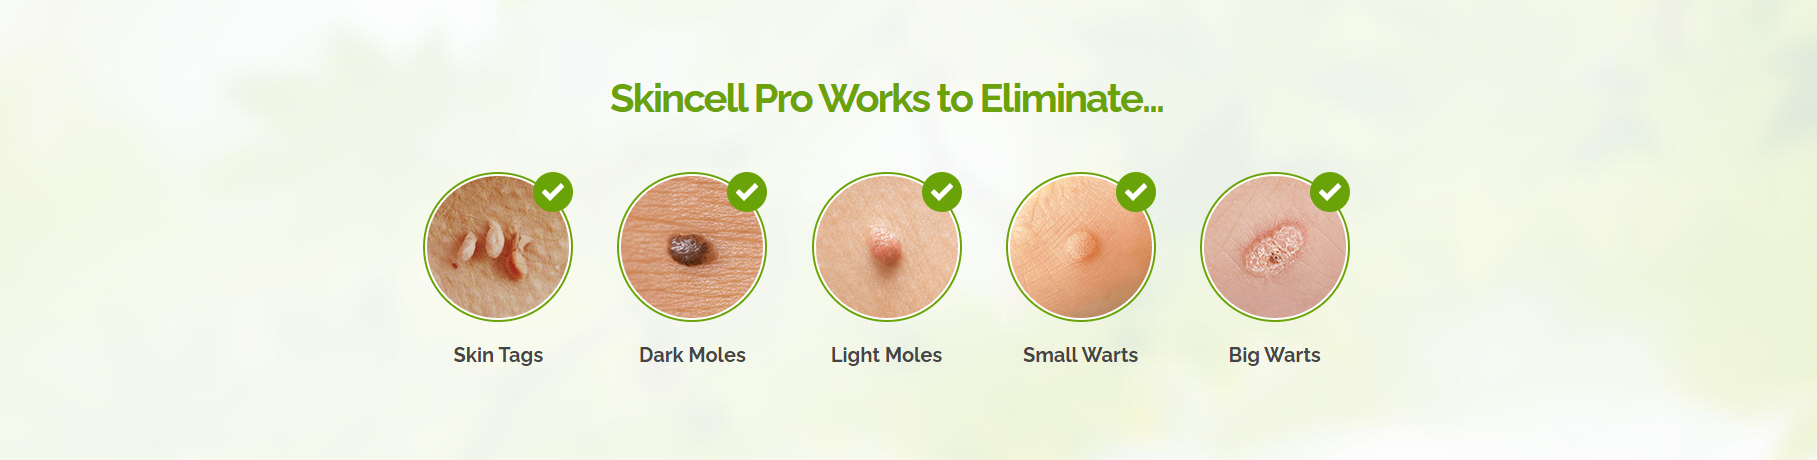 skincell pro work